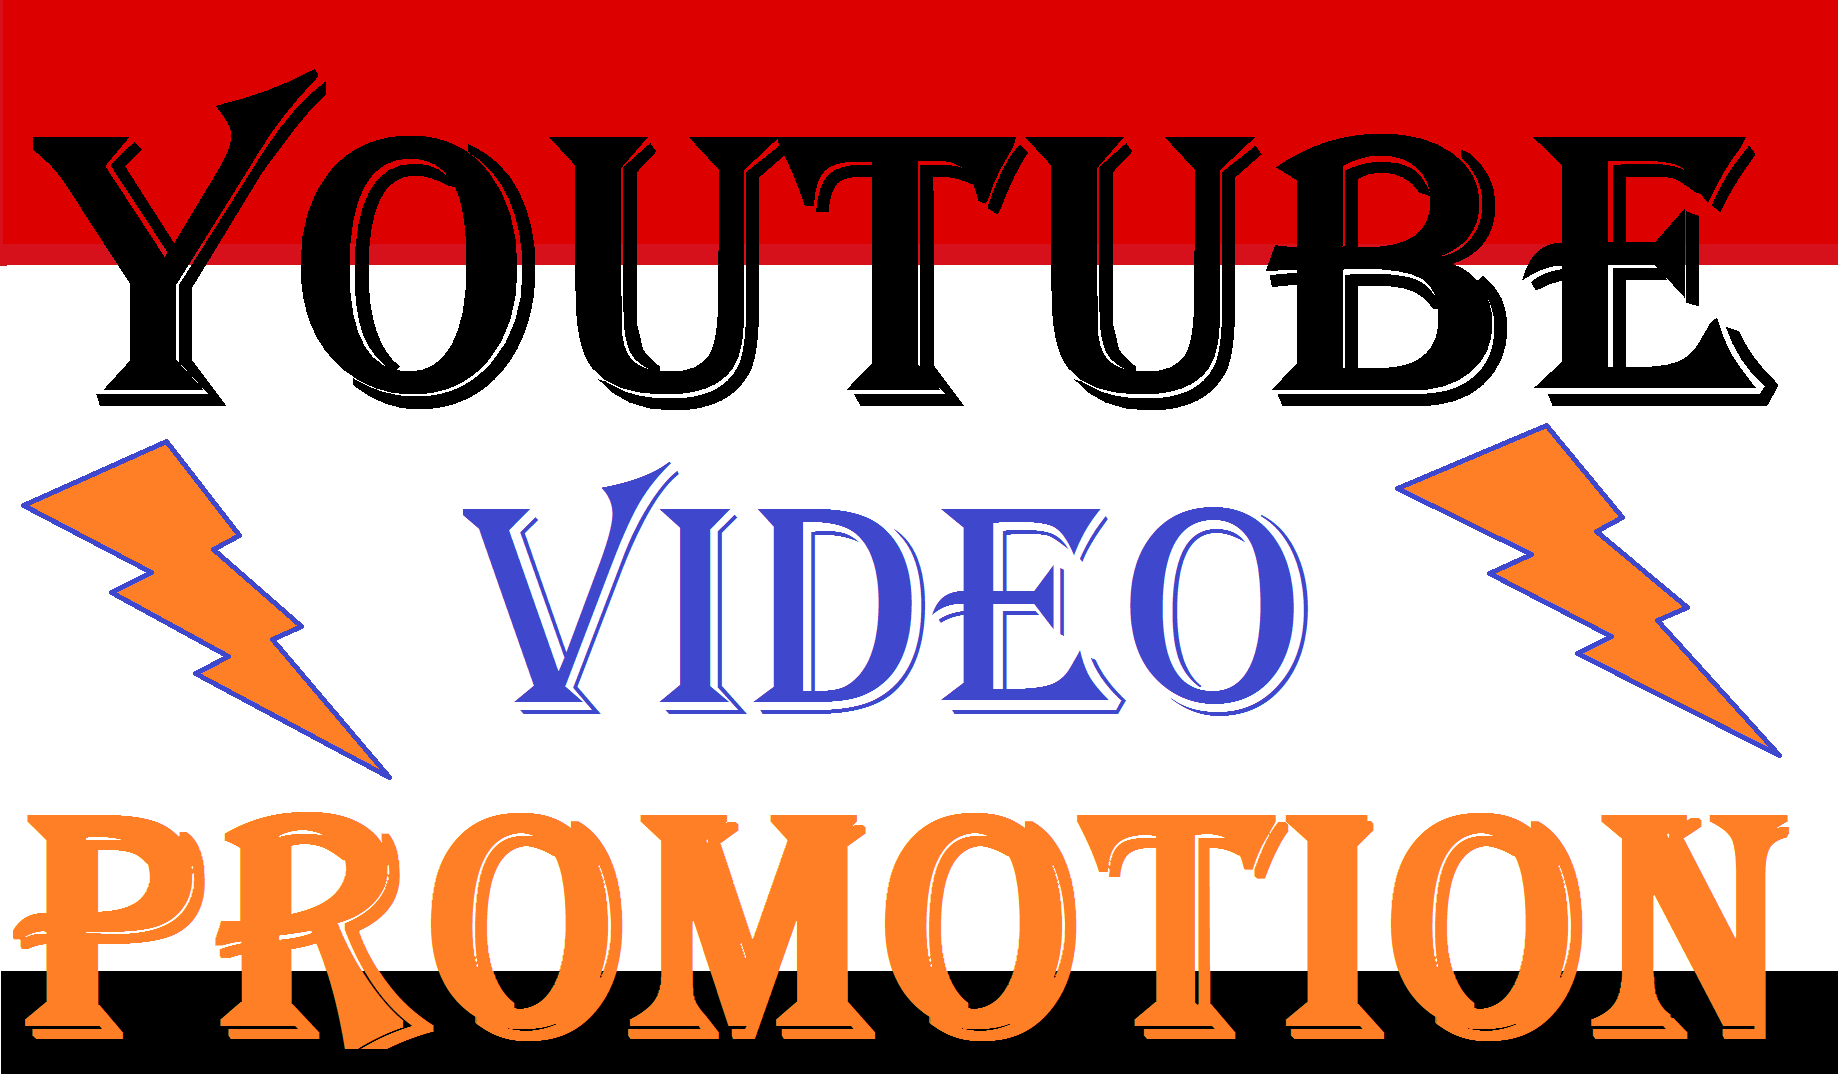 Super YouTube Package Promotion